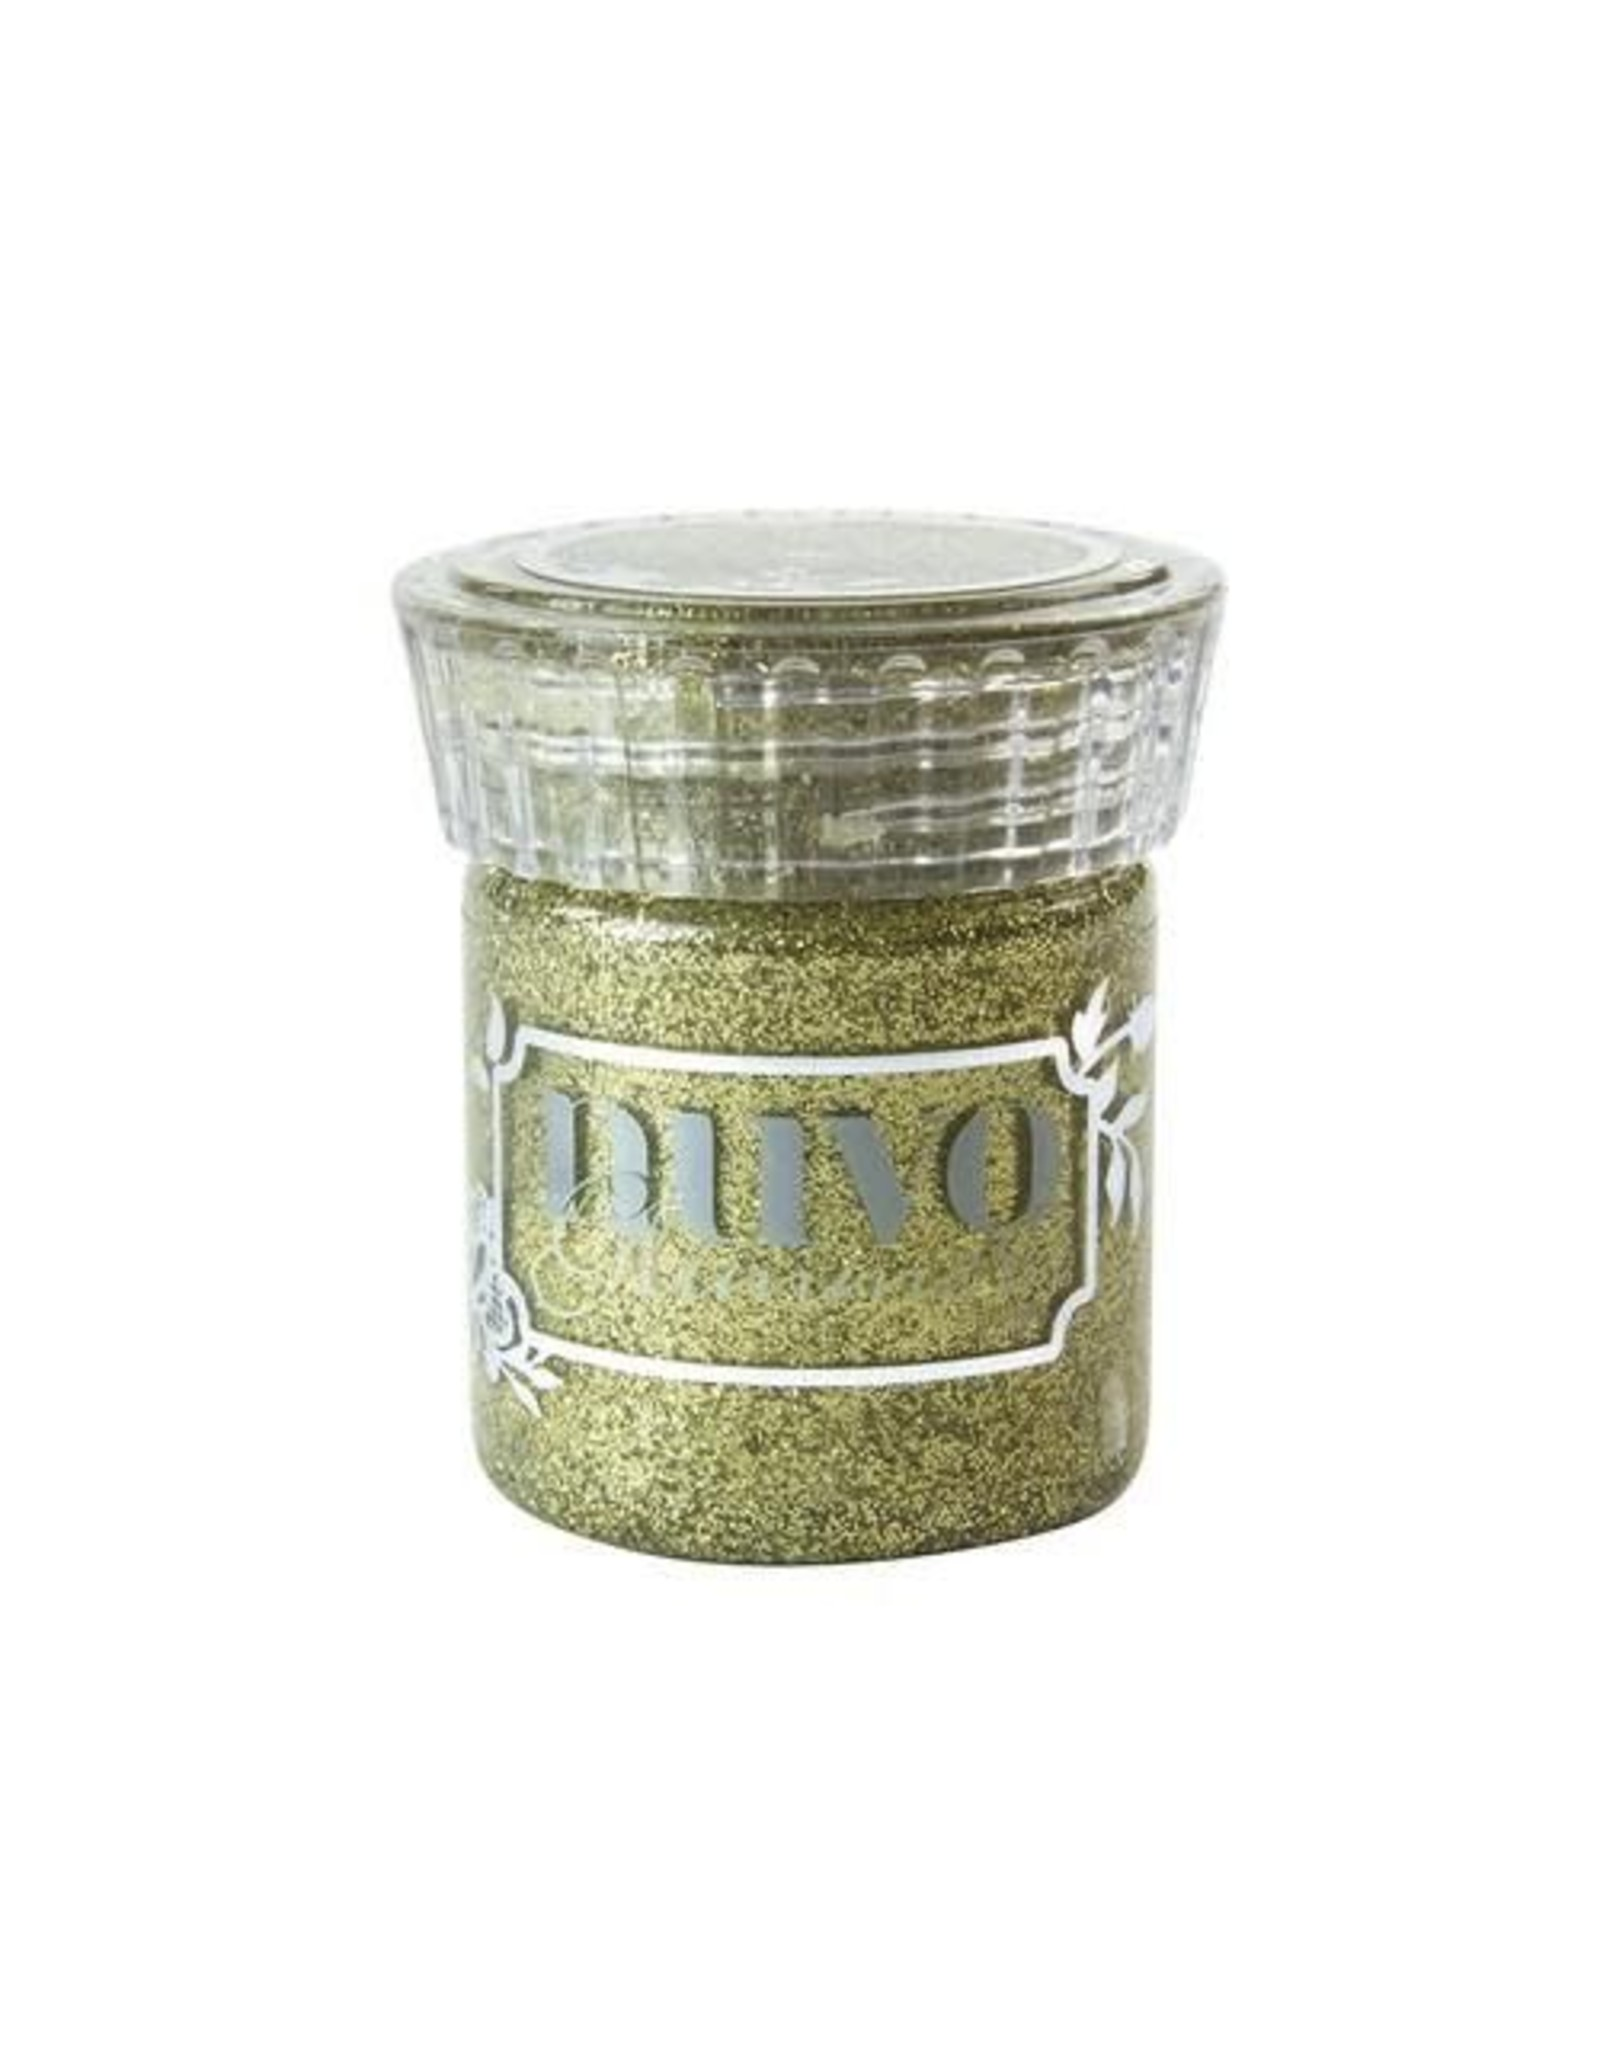 Nuvo glimmer Nuvo glimmer paste - golden crystal 950N